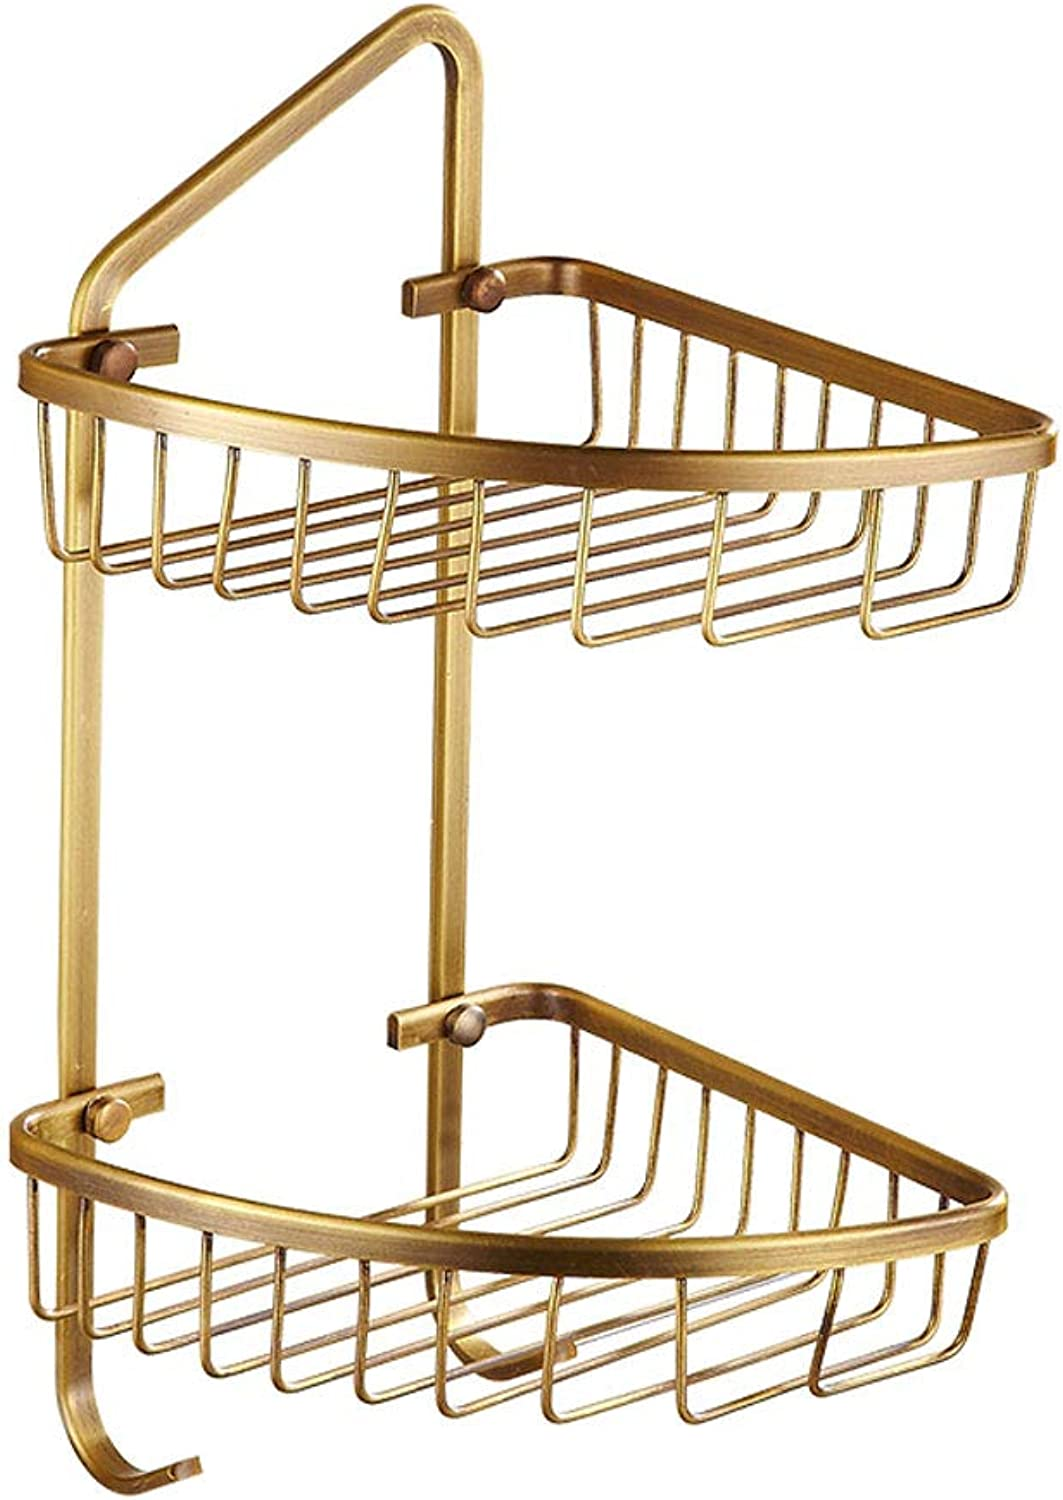 Copper Antique Double Layer Rack Bathroom Triangle Storage Basket Bathroom Corner Shelves Accessories Storage